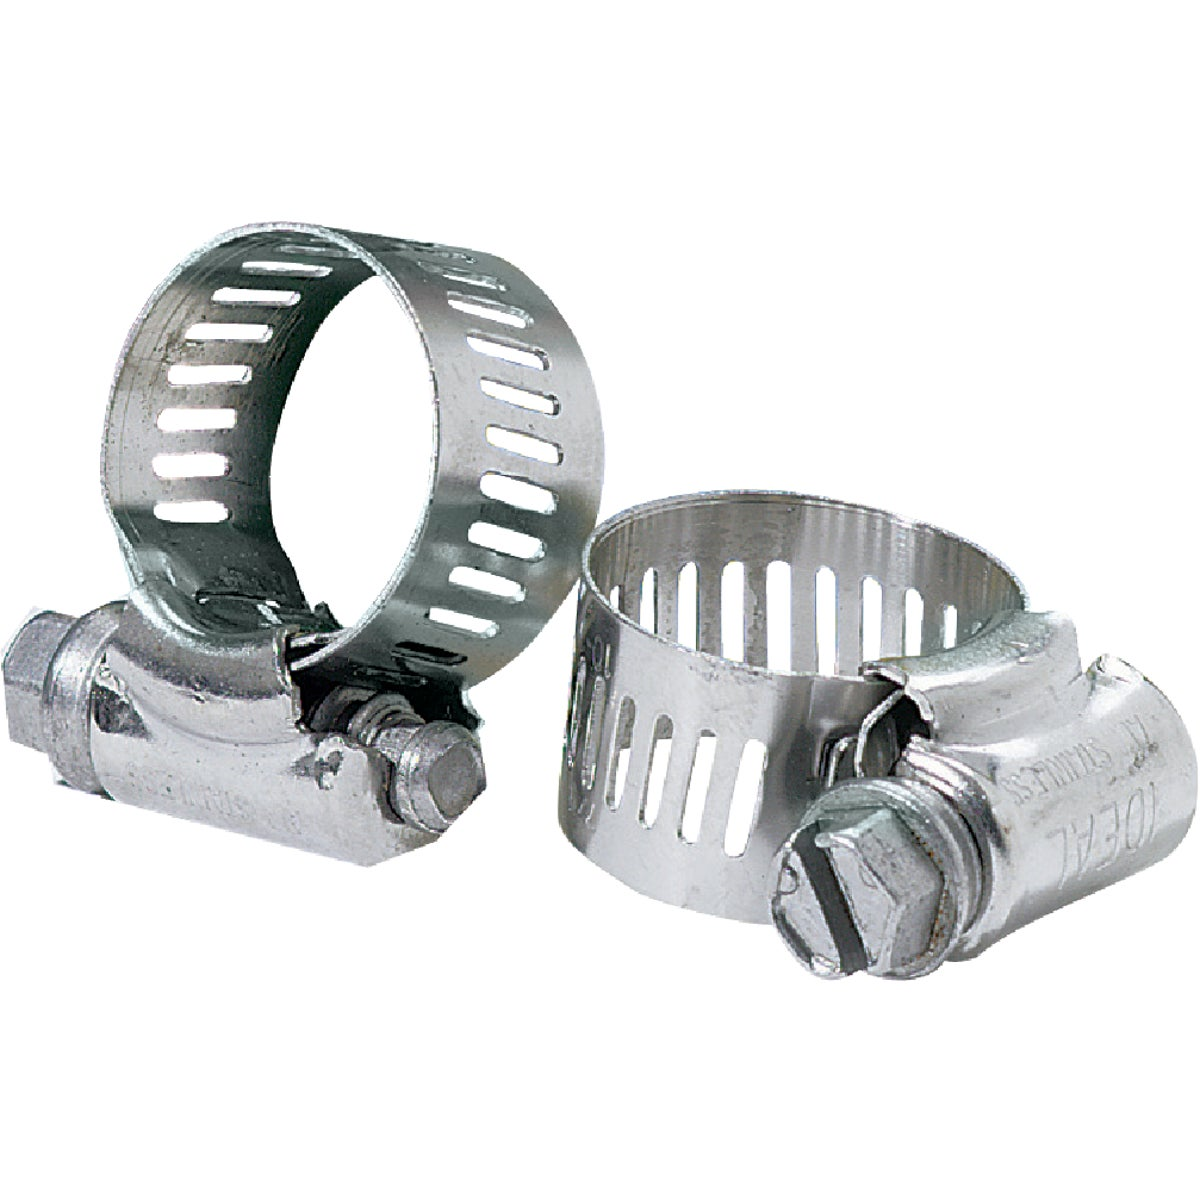 "1/2"" - 1-1/4"" CLAMP"